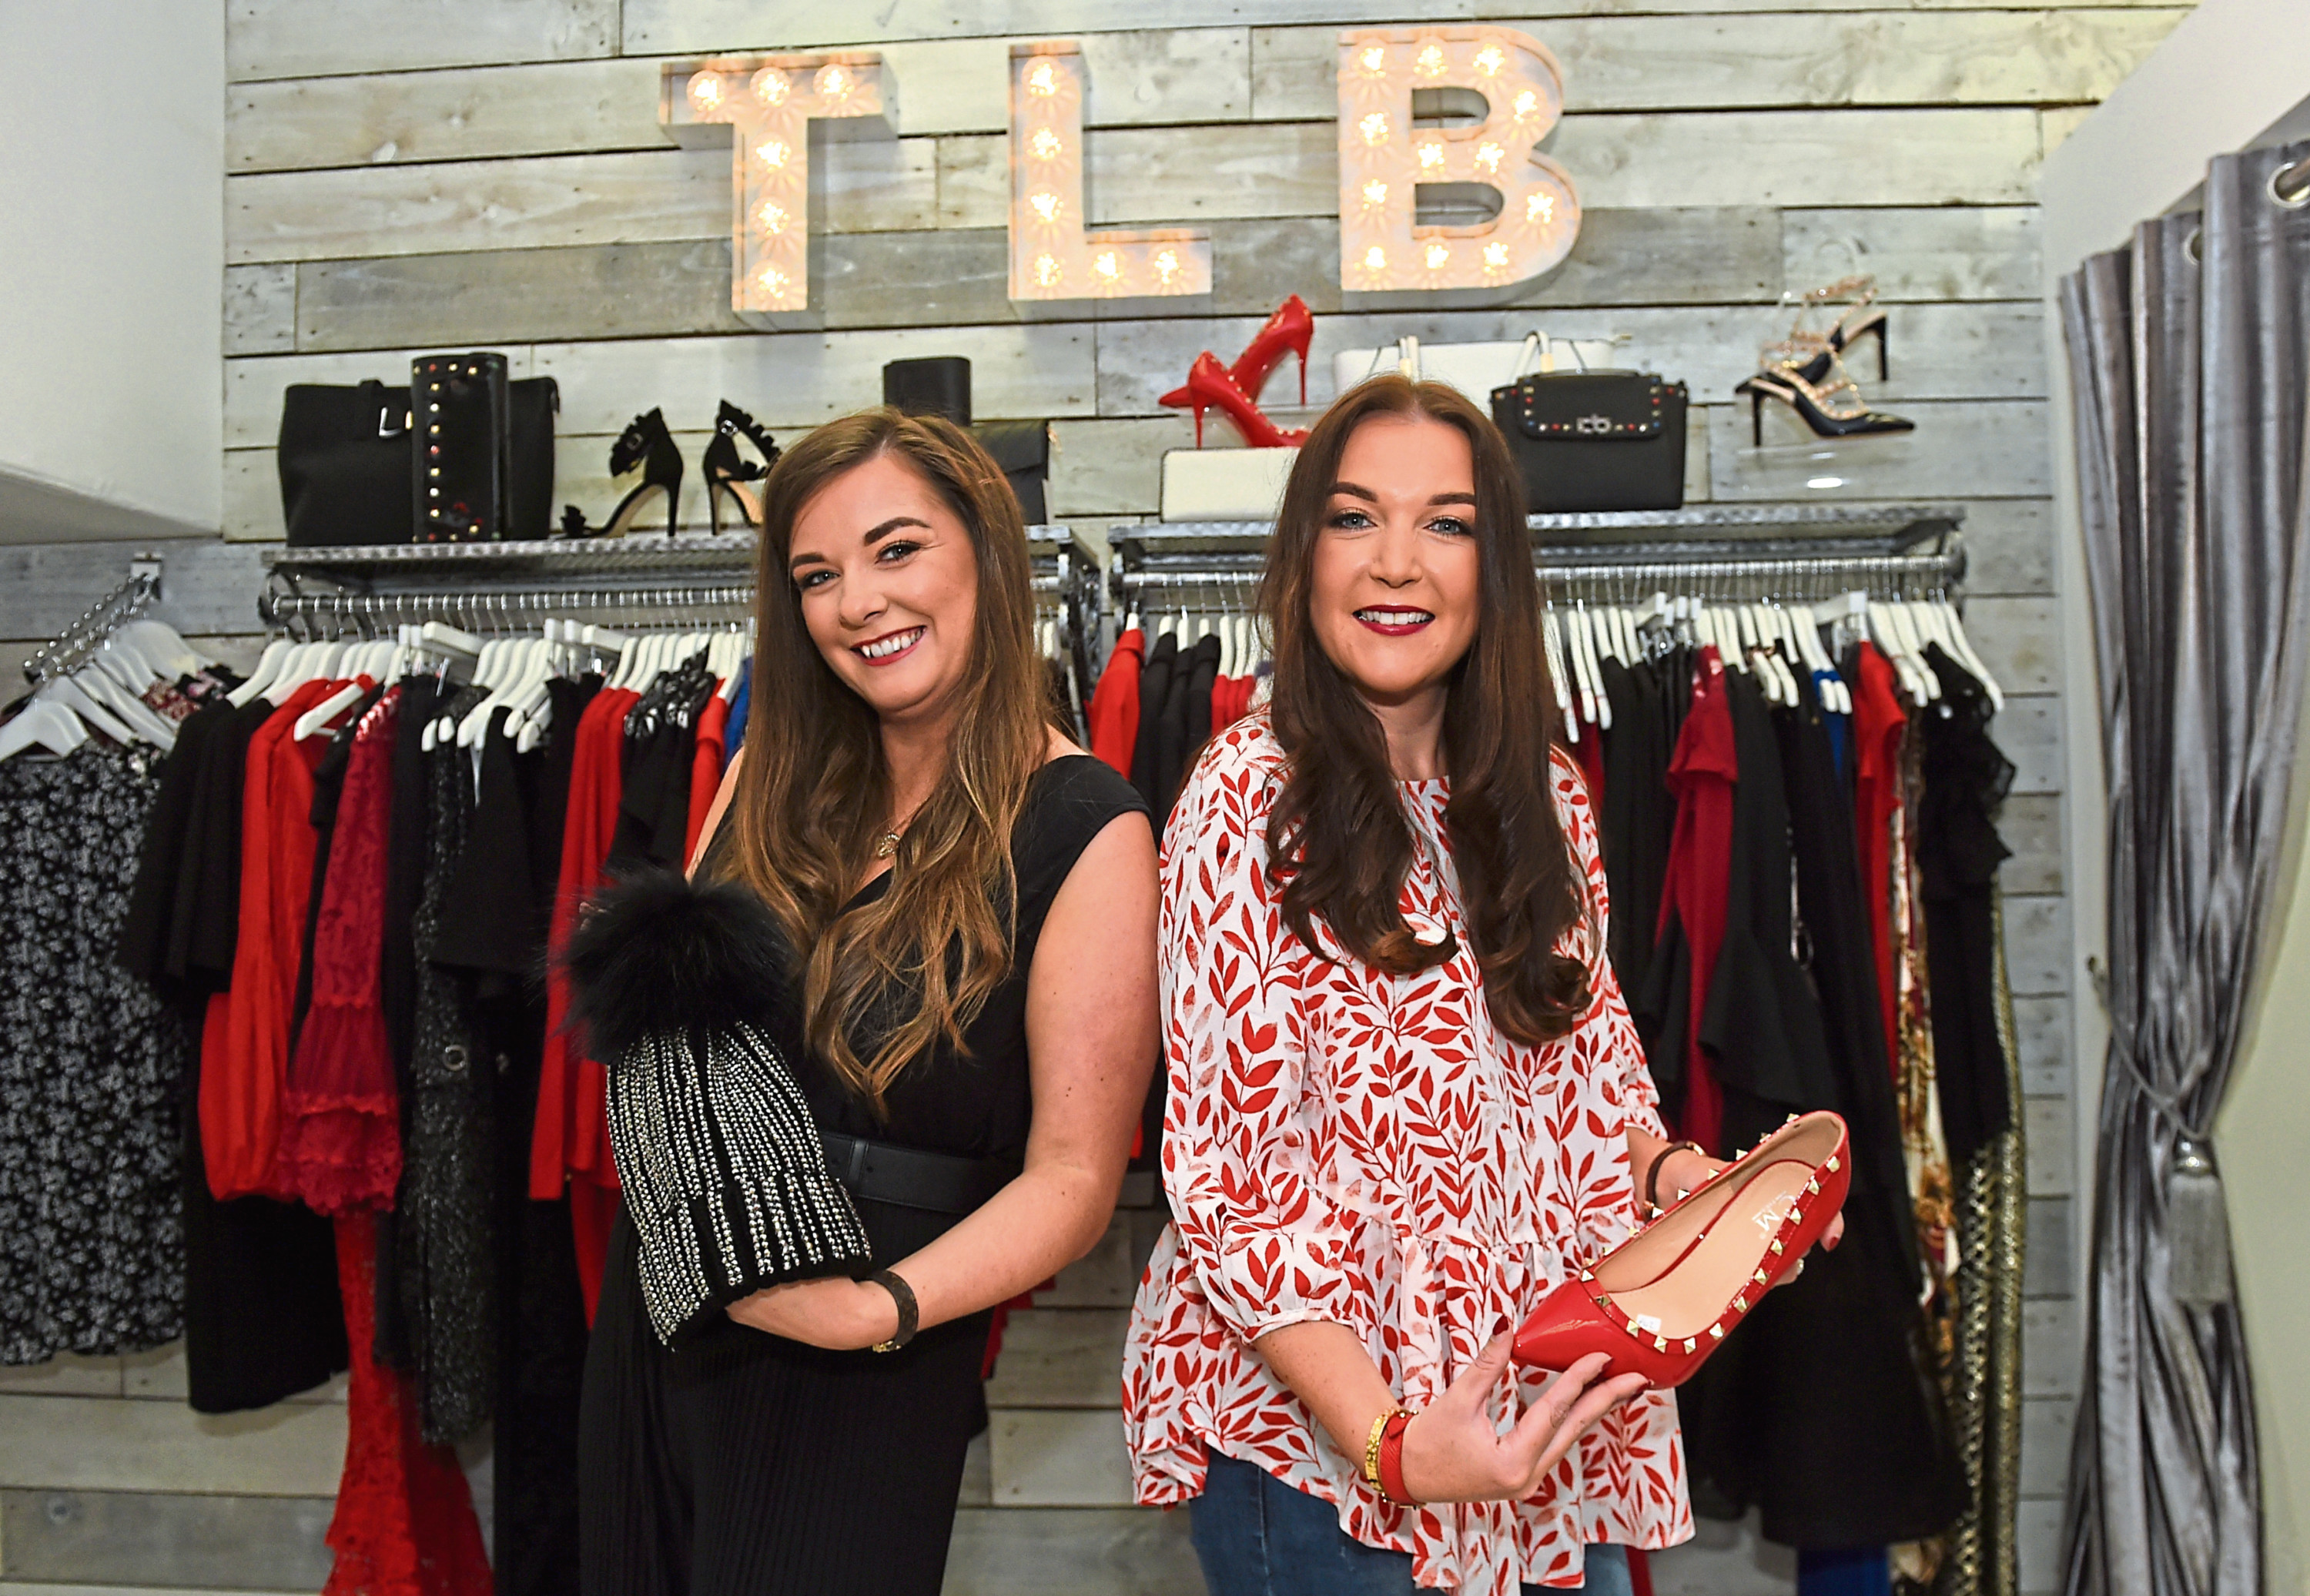 Tiger Lily Boutique is a finalist in the Fashion Retailer of the Year category at the EE Retailer Awards 2017. Pictured from left, Melissa McArthur and sister Debbie Brash. 08/09/17 Picture by HEATHER FOWLIE